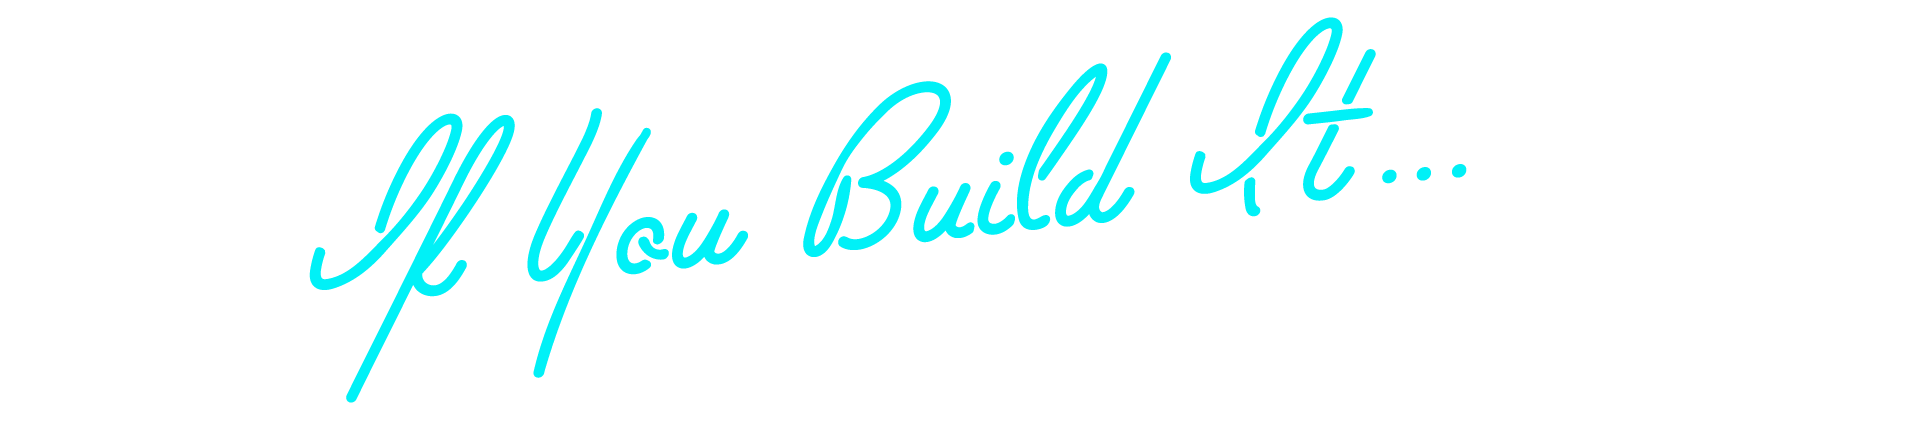 BS103_Title03-IfYouBuild.png